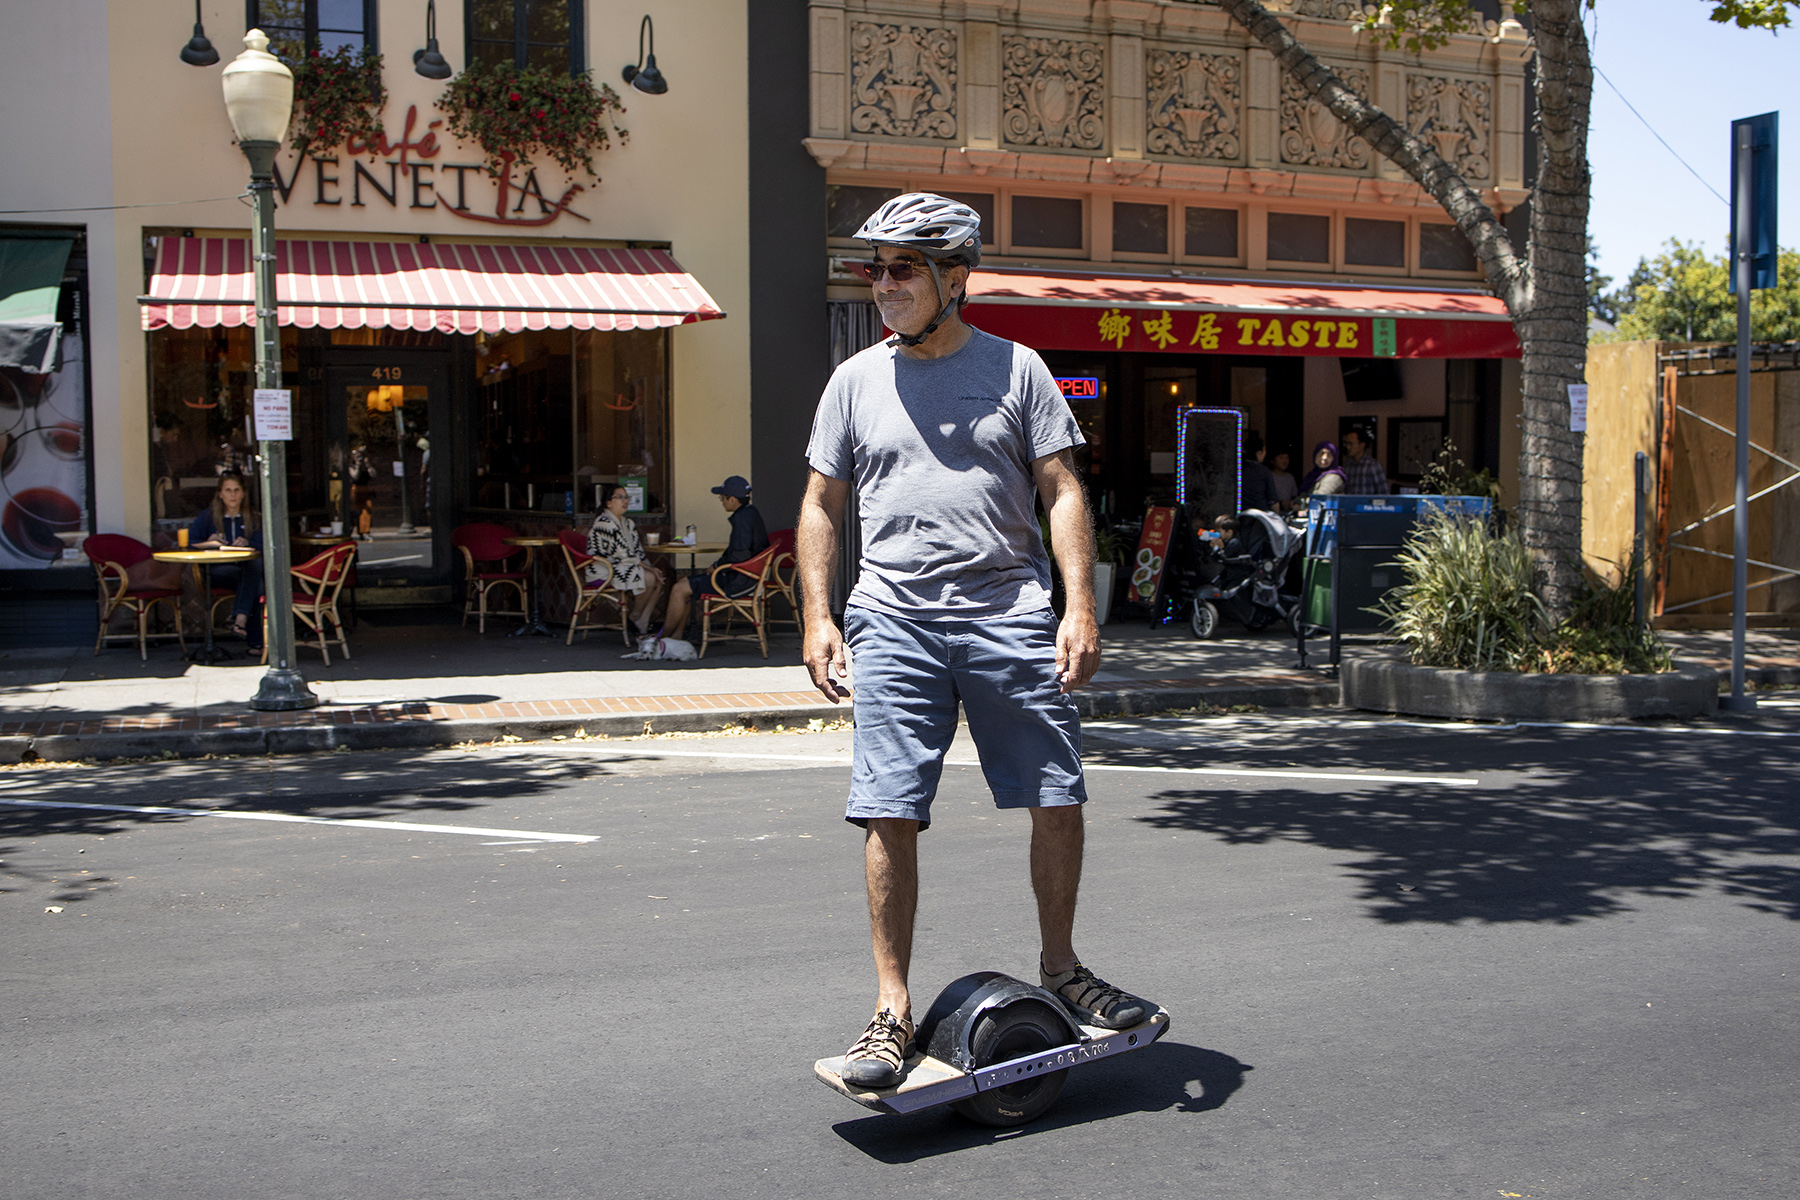 A man rides a hoverboard-like device on University Avenue during the World Music Day festival in Palo Alto, Calif., on June 16, 2019. The street was closed to traffic for several blocks for the event. This was the 11th year of the annual festival in the city, which is always held on Father's Day.